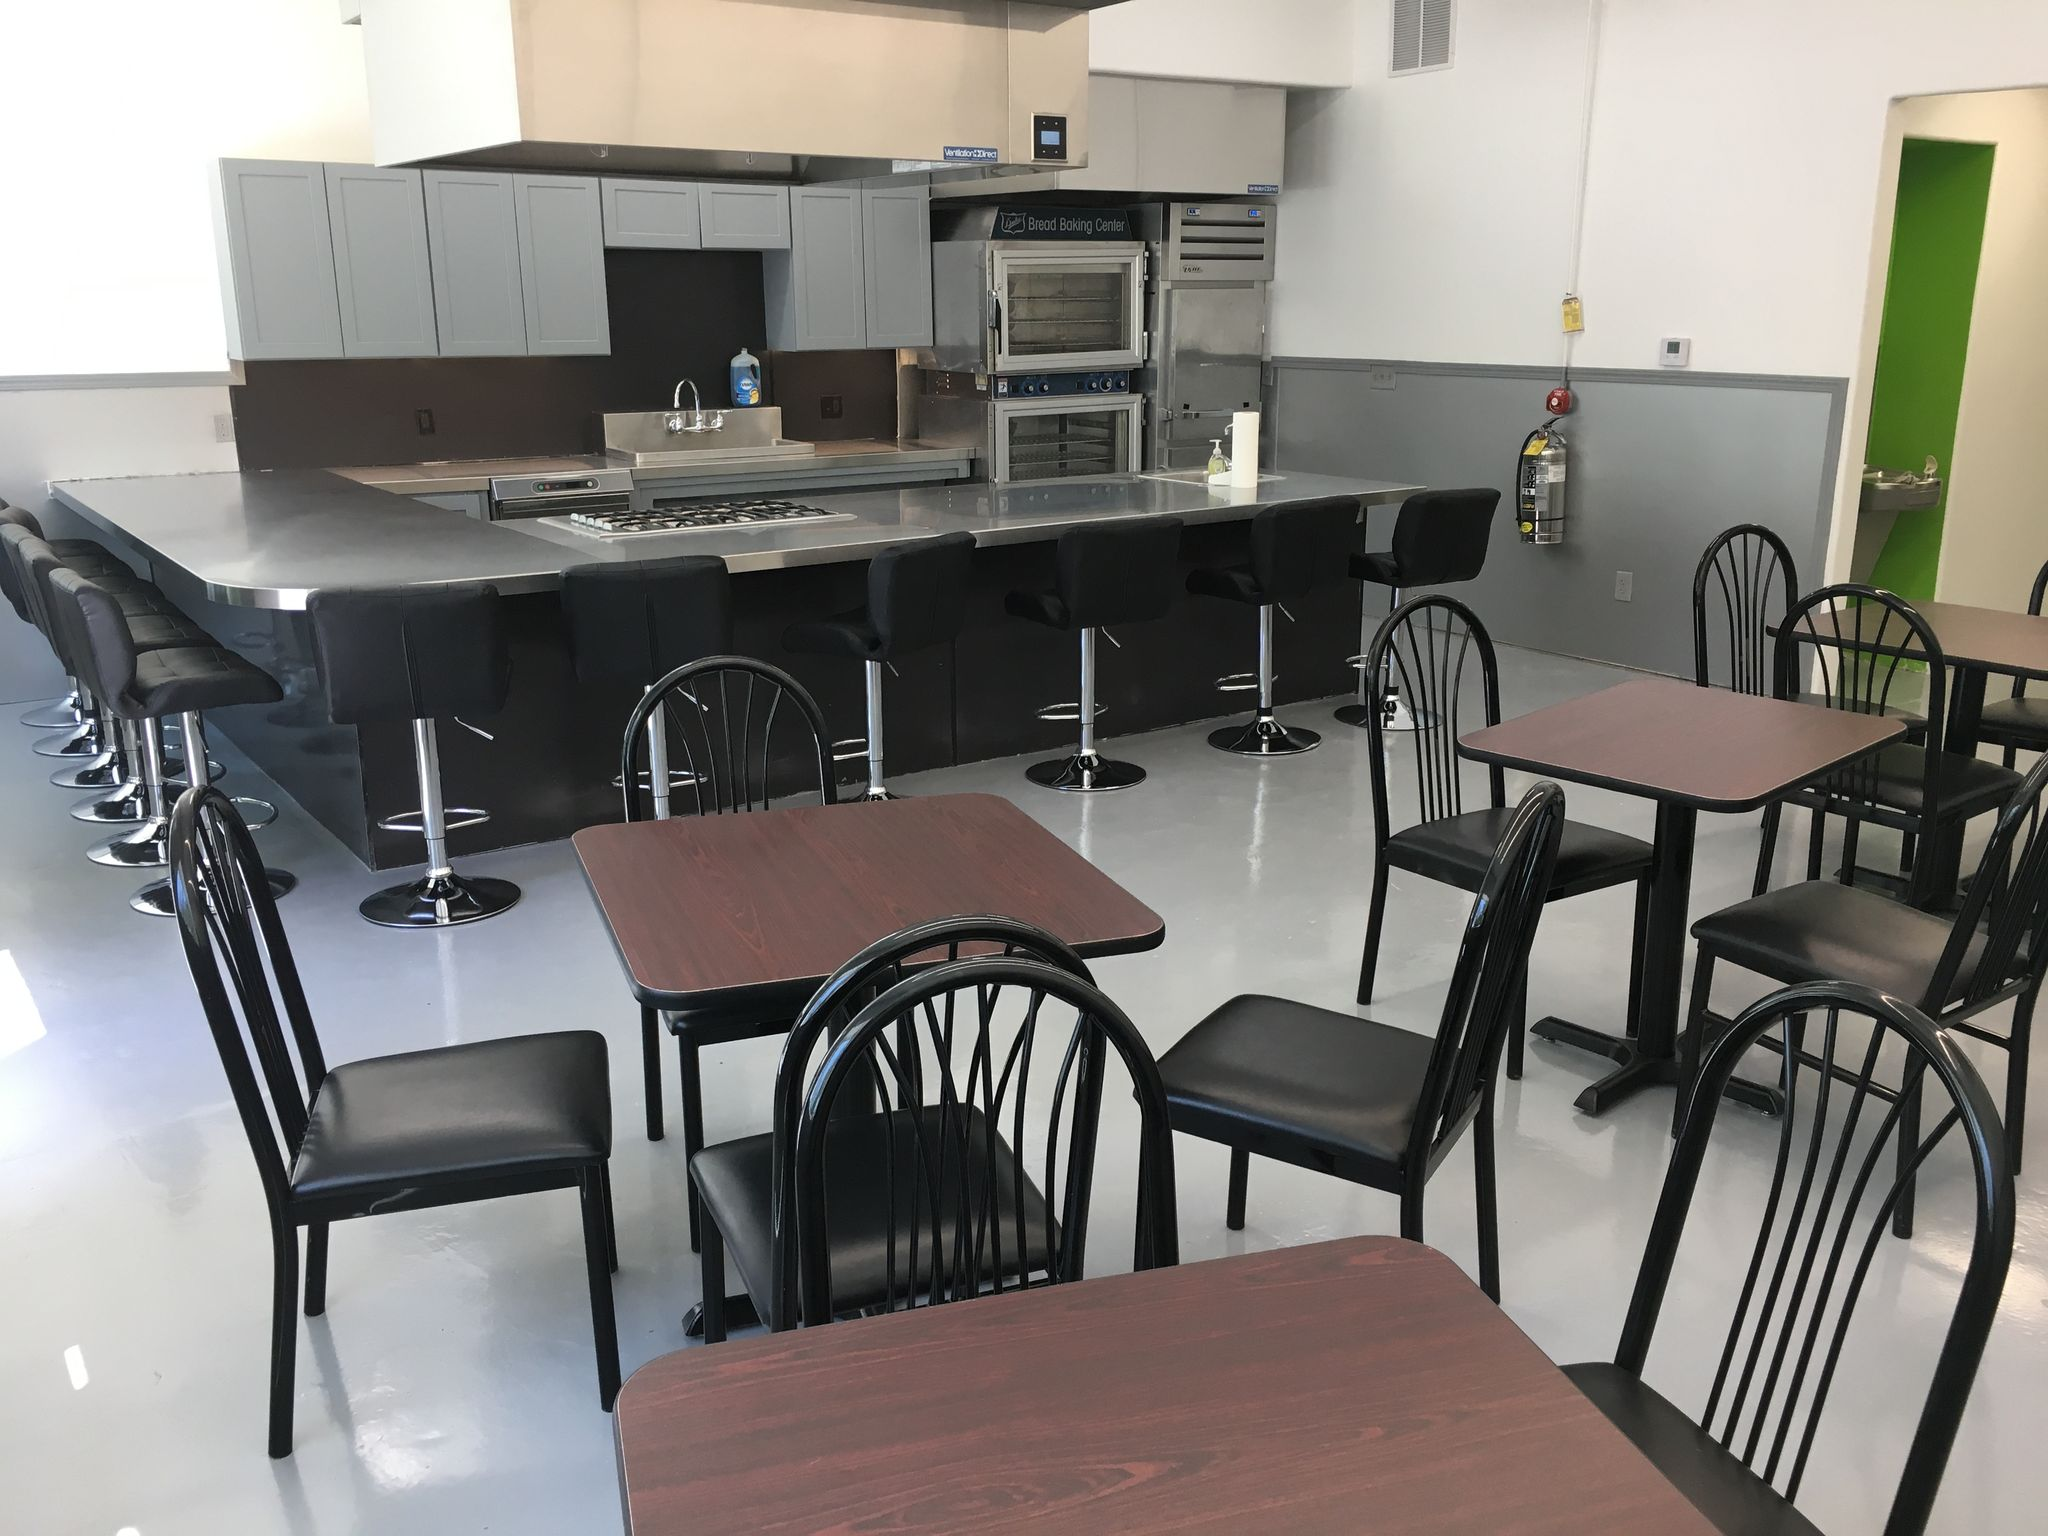 The interior of Kitchen Spaces, a commercial kitchen space that small culinary businesses in Des Moines can base their operations out of.